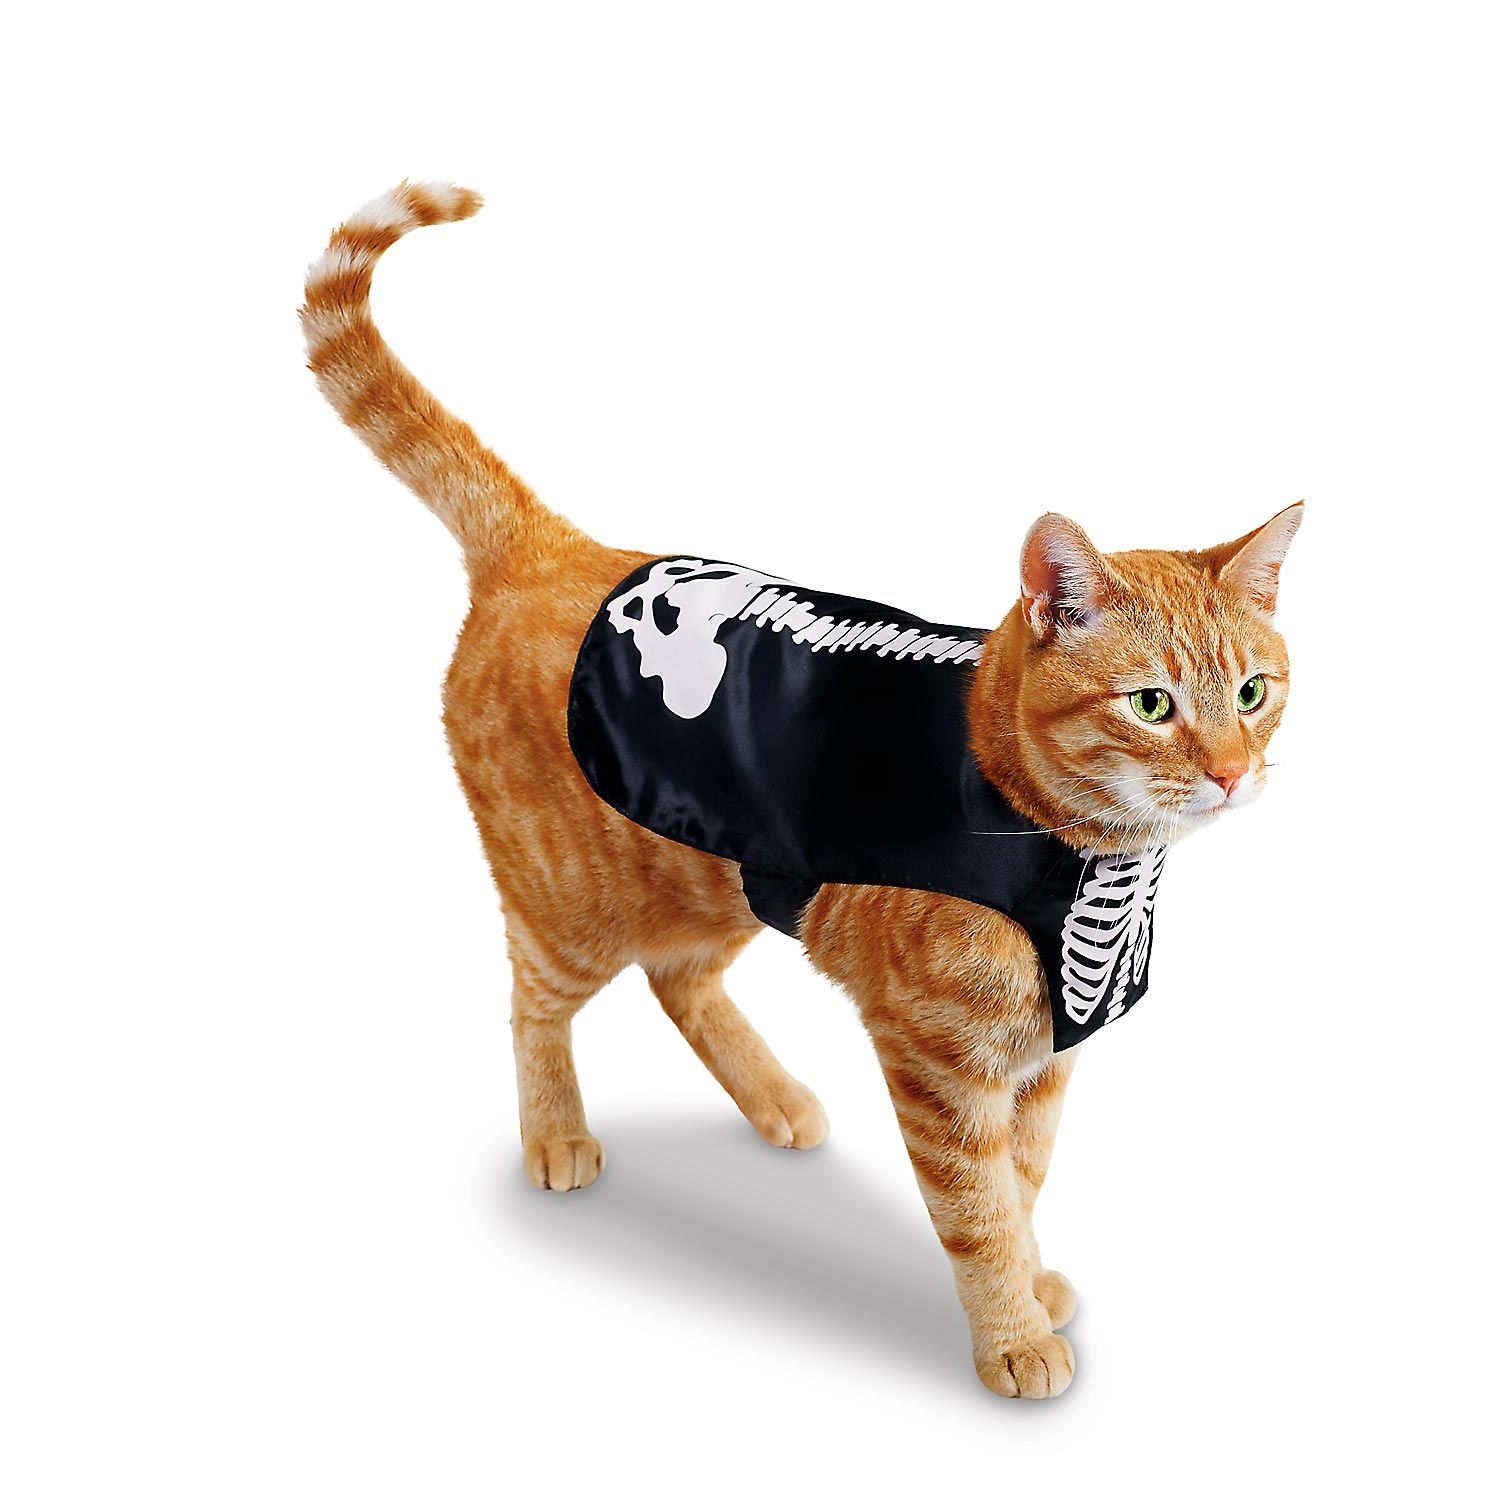 Skeleton Halloween Costume for Cats This one might